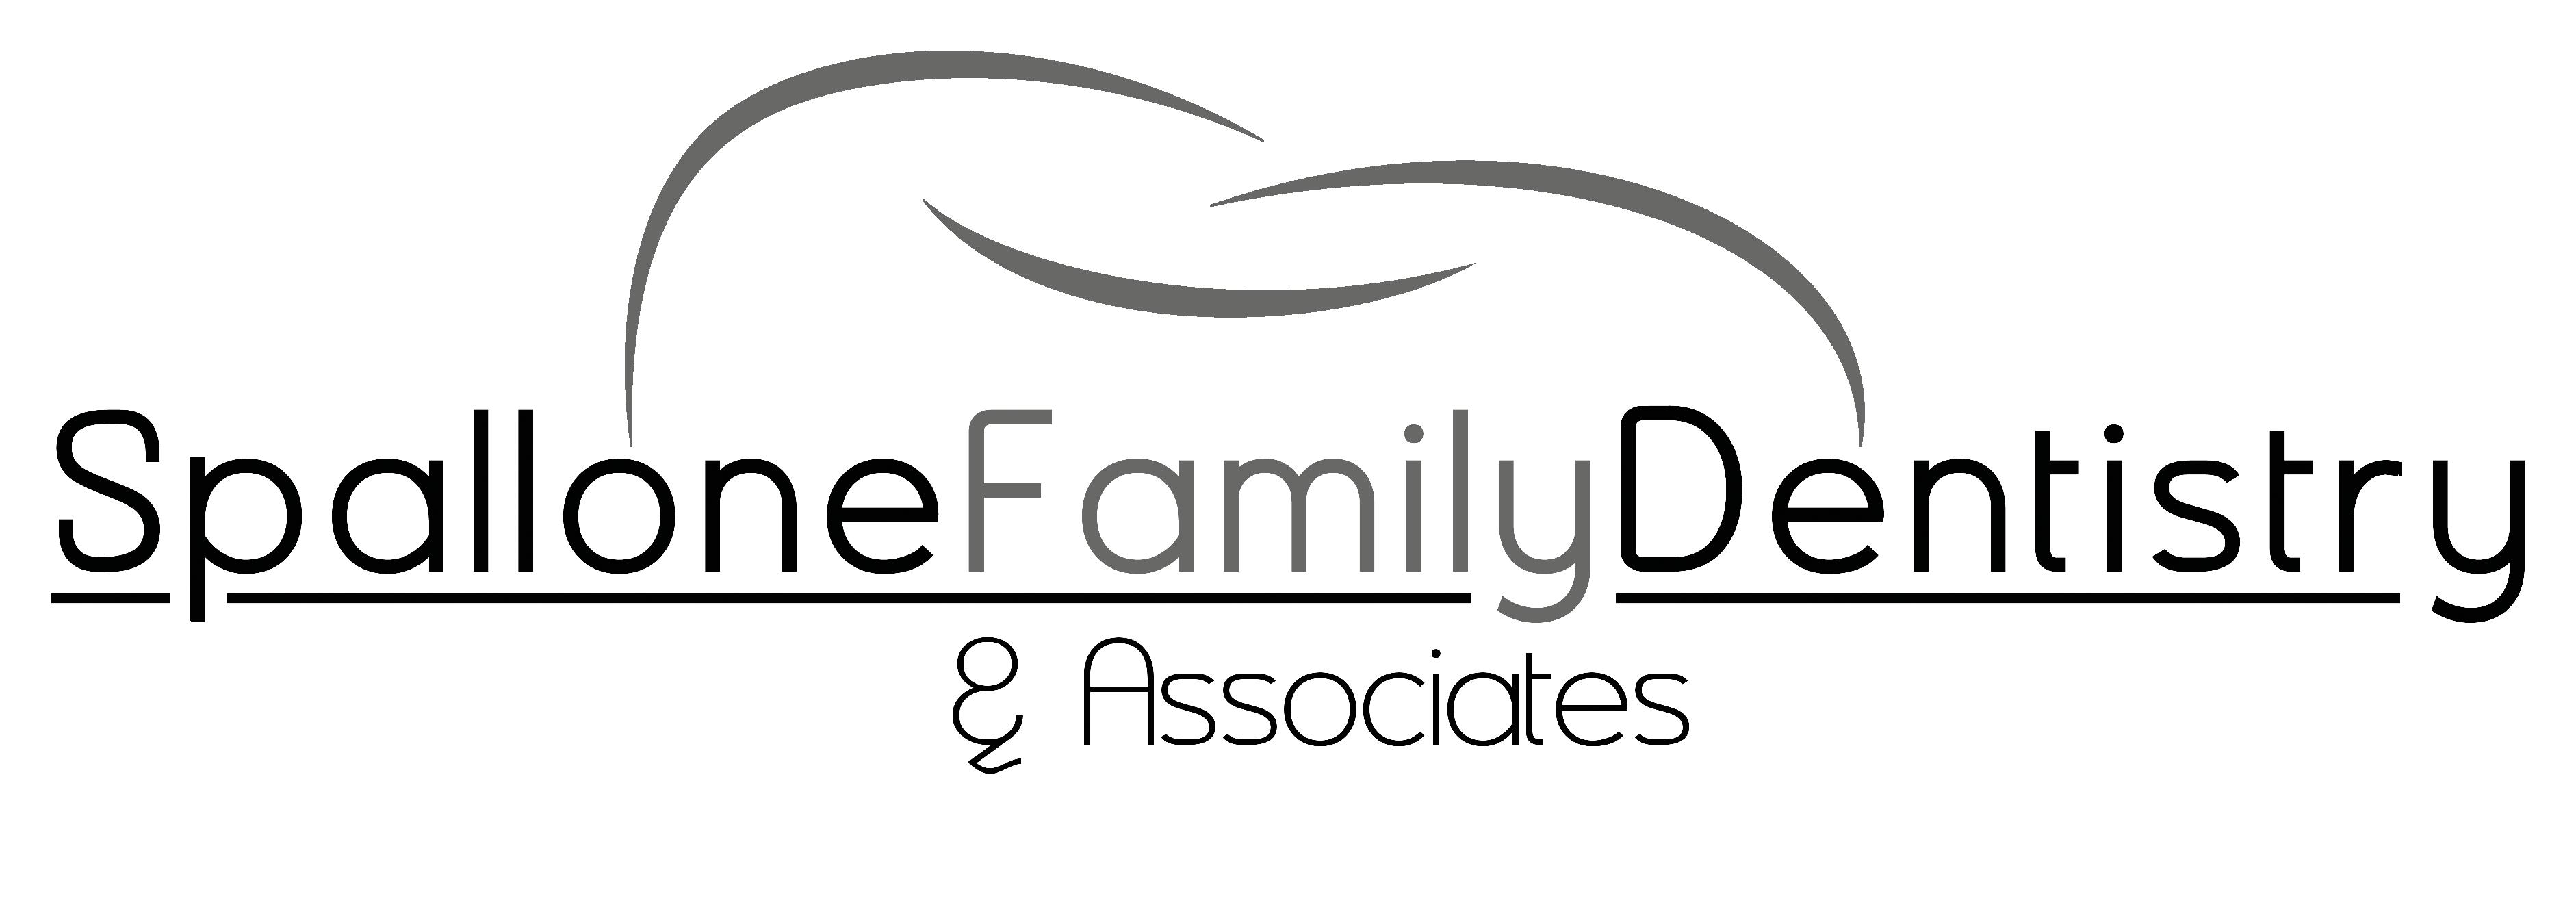 Spallone Family Dentistry-and associates-page-001